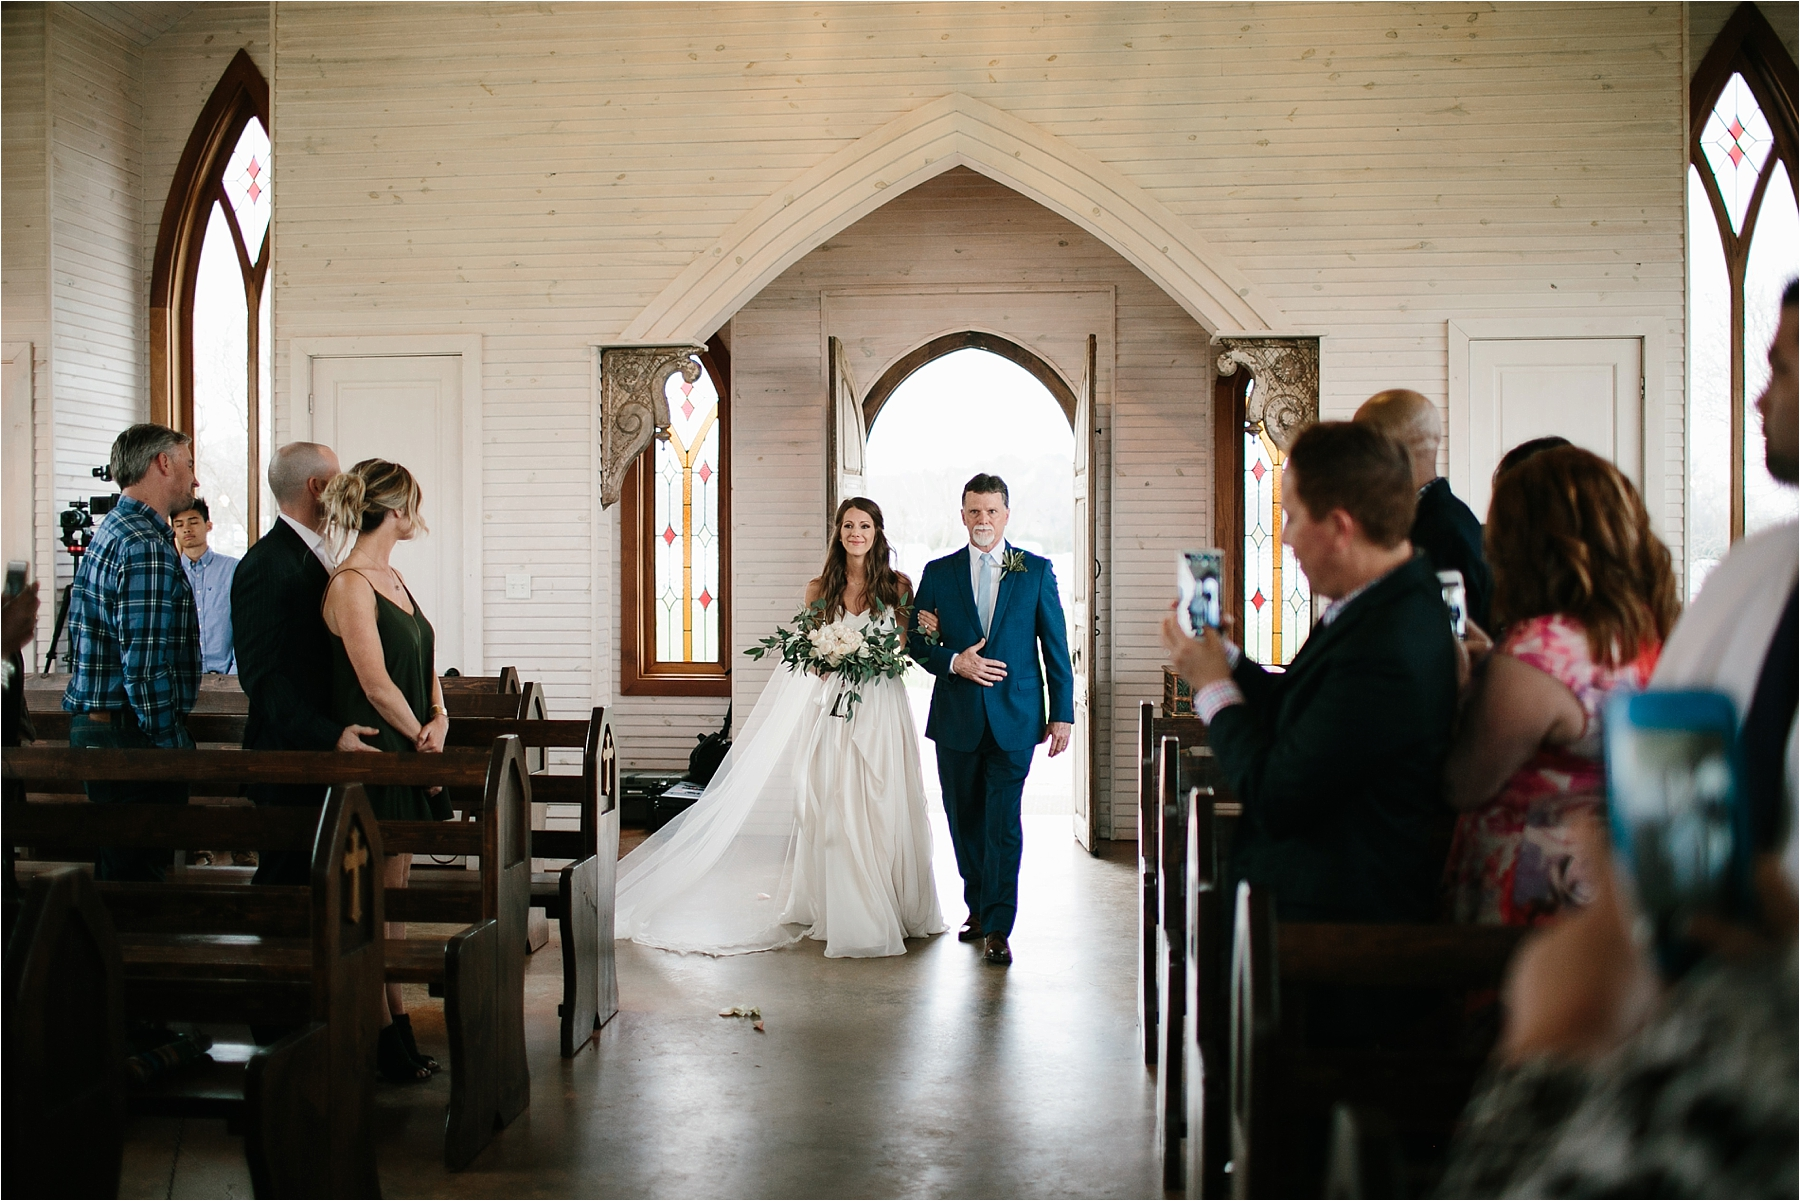 Lauren + Matt __ an intimate, emotional, blush pink, navy blue, and greenery toned wedding accents at the Brooks at Weatherford by North Texas Wedding Photographer Rachel Meagan Photography110